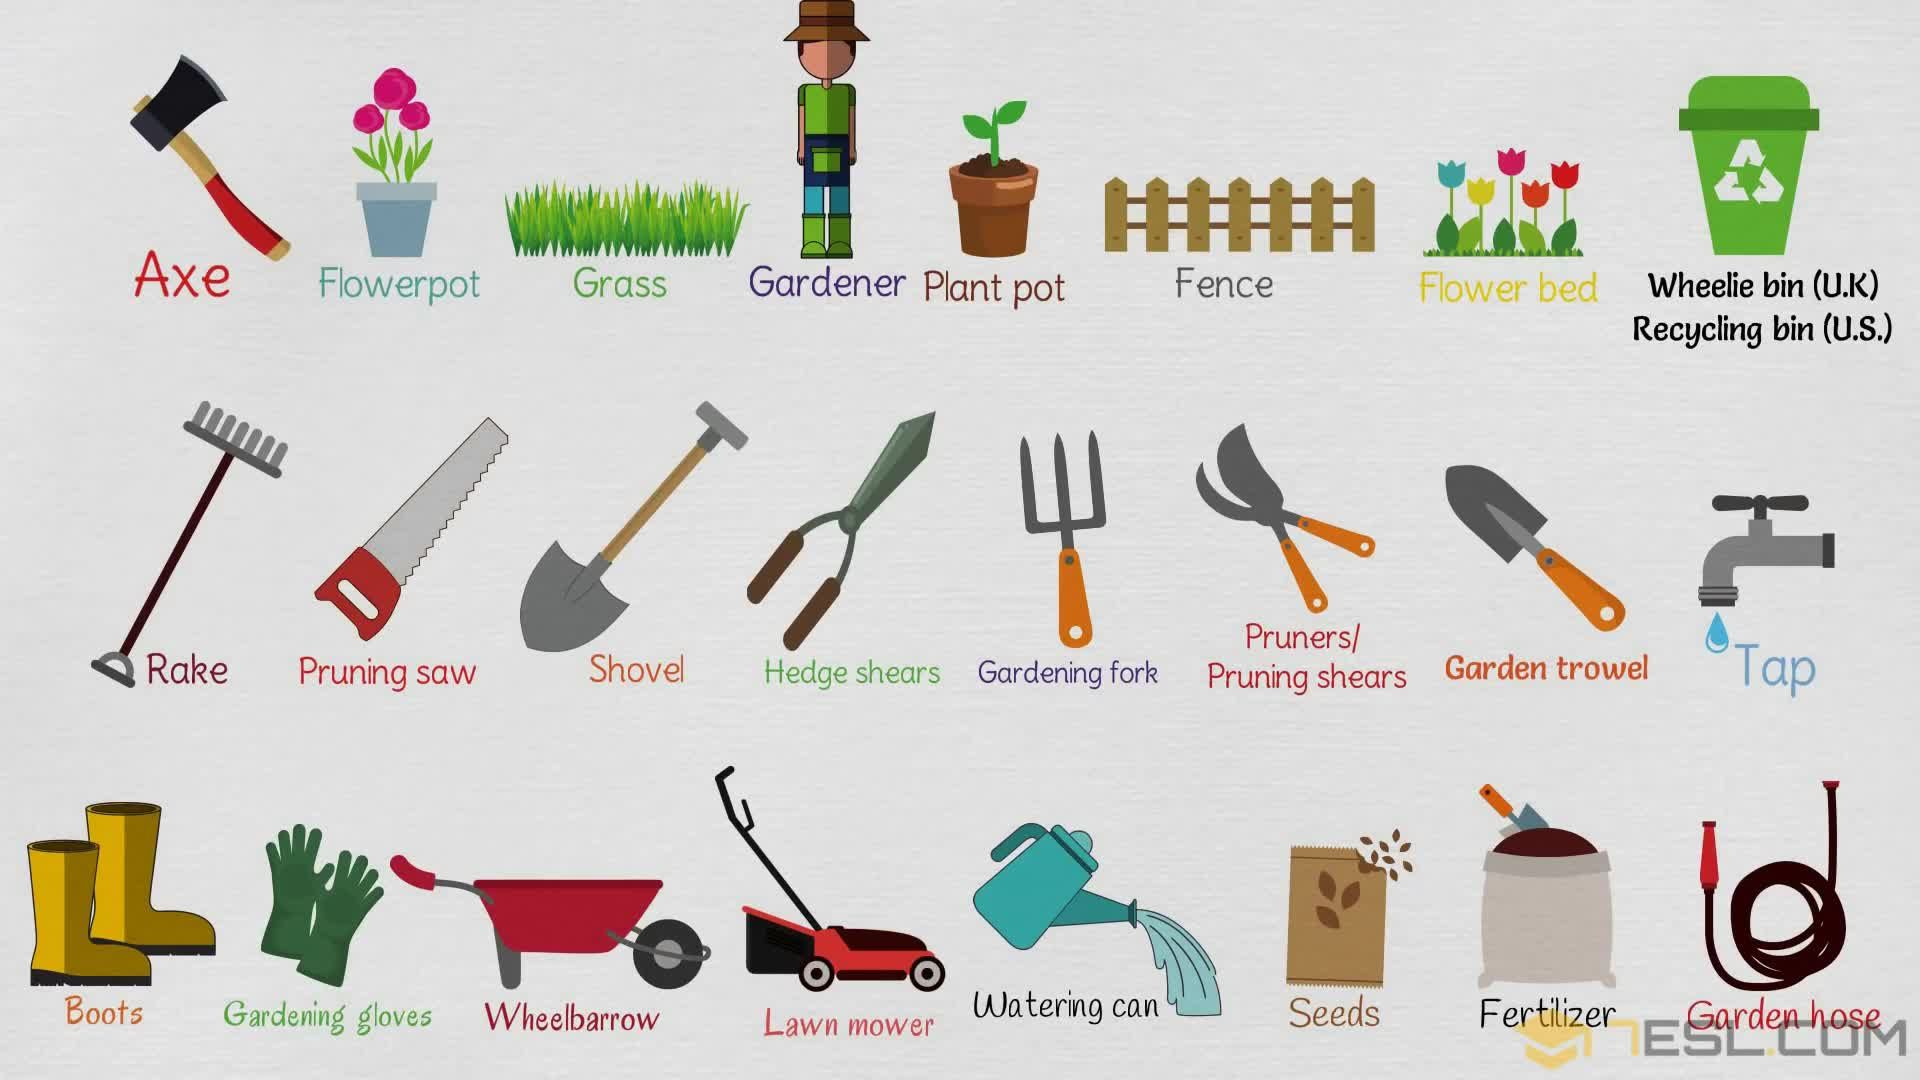 Gardening Tools Names List With Useful Pictures Garden Tools